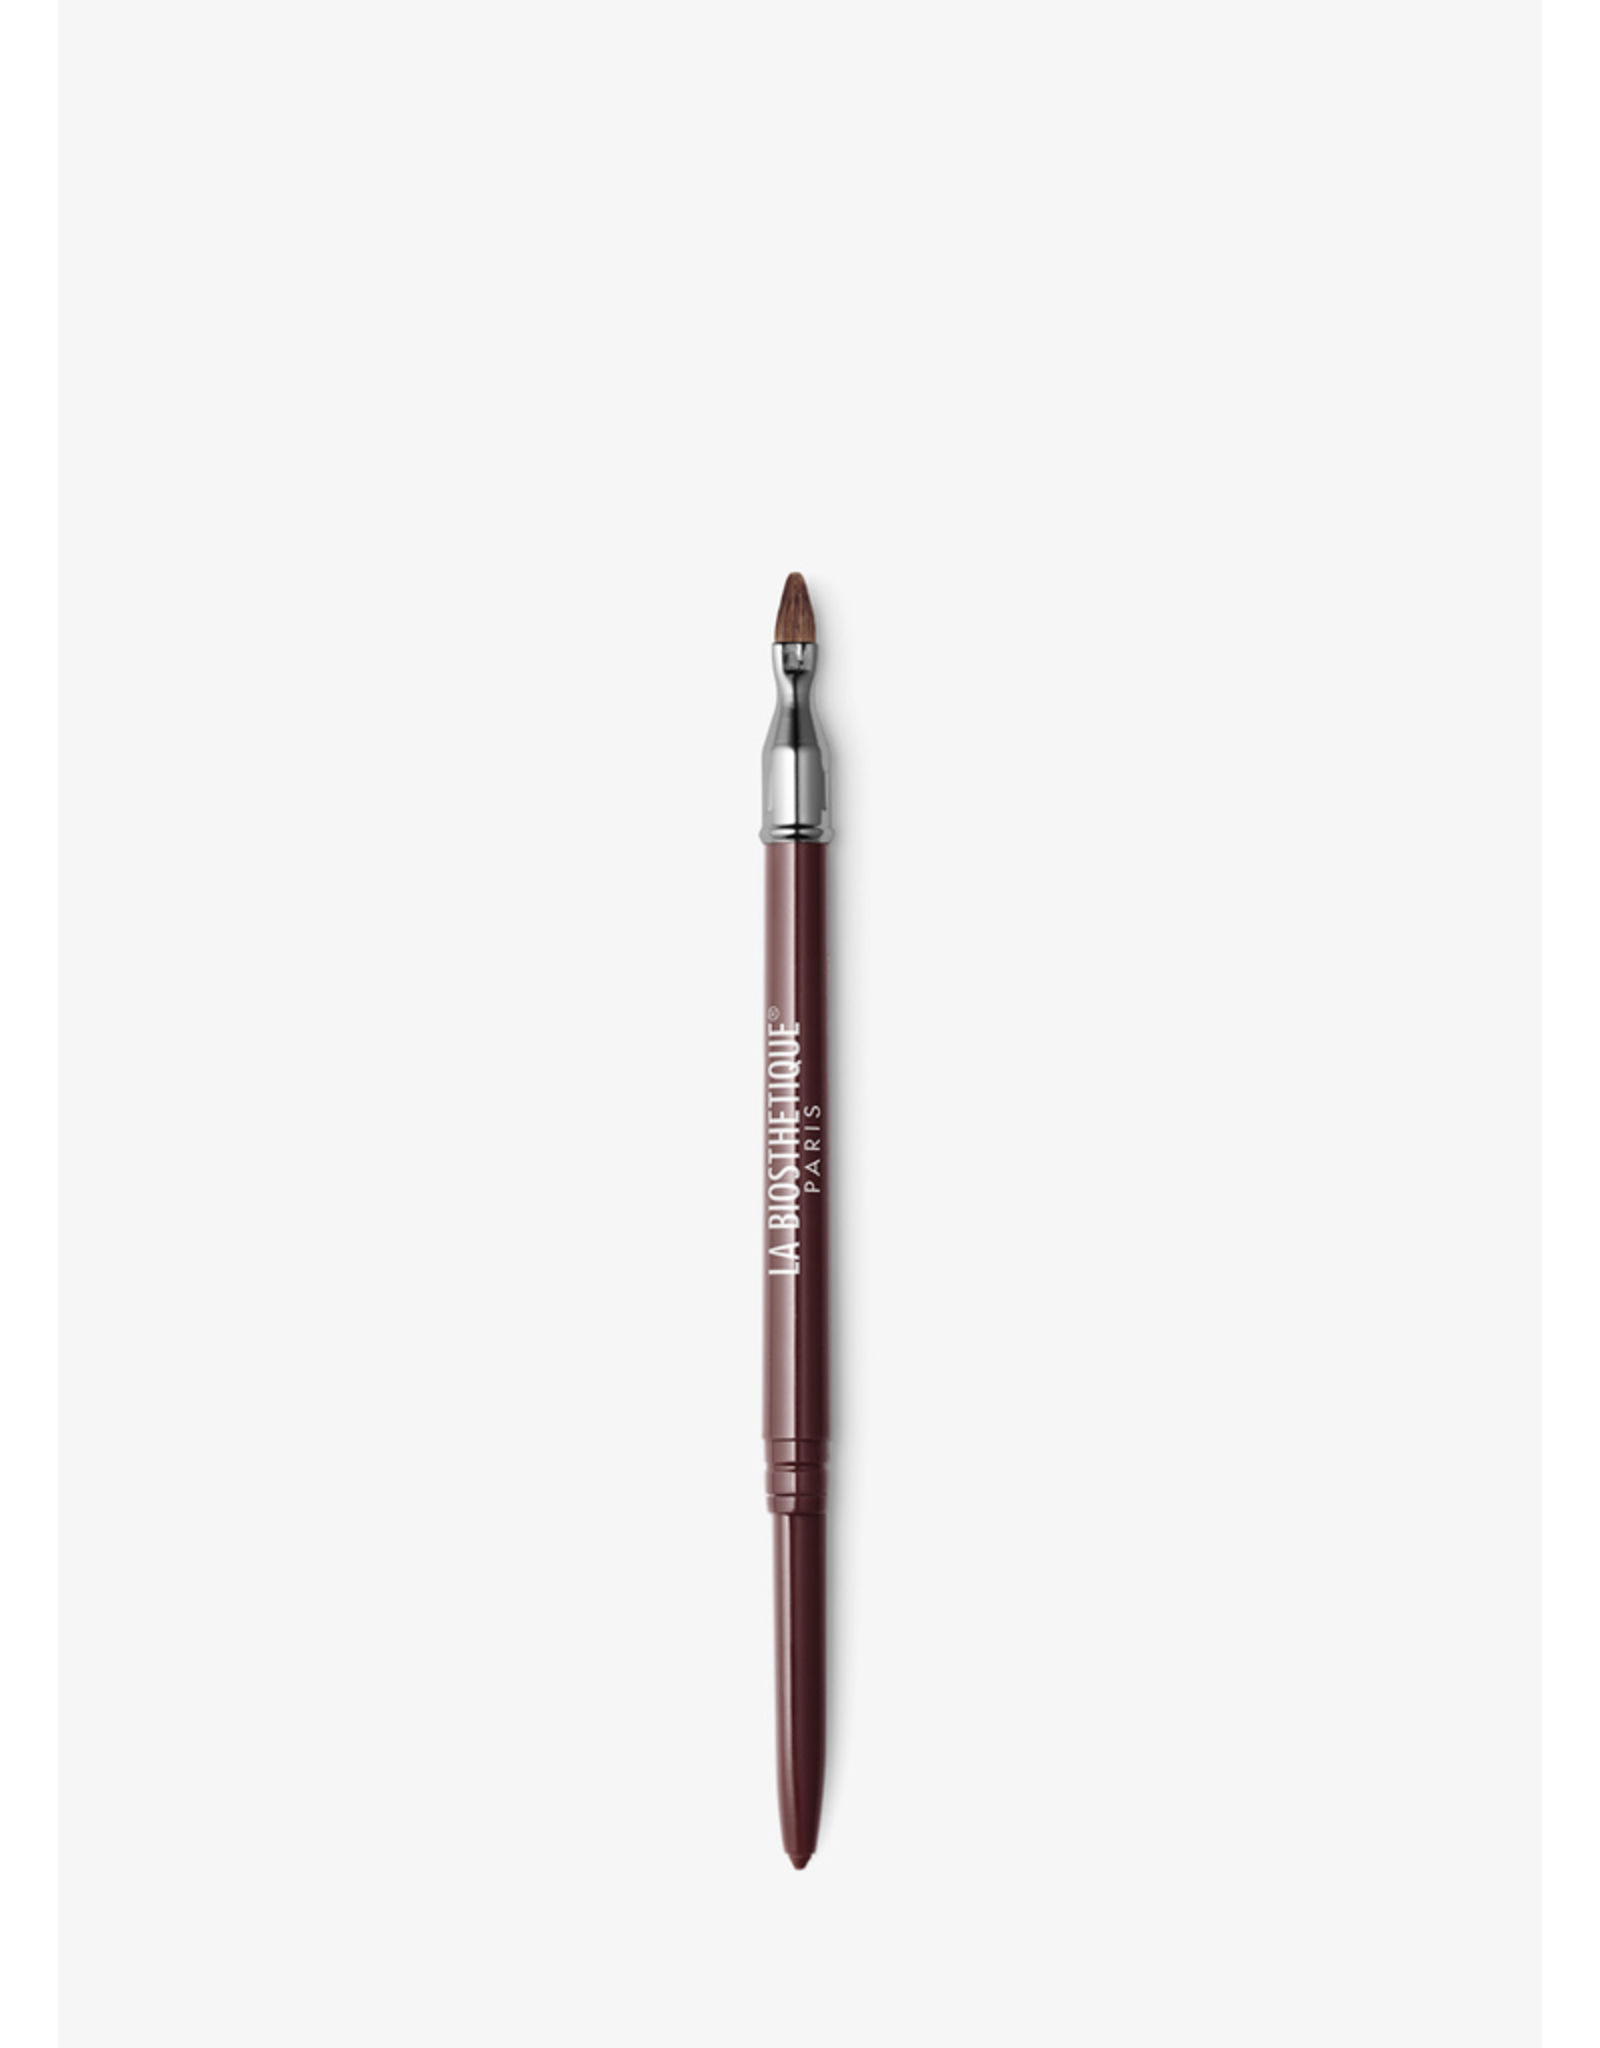 LA BIOSTHETIQUE Automatic Pencil for Lips LL22 - Bordeaux (0.28 g)